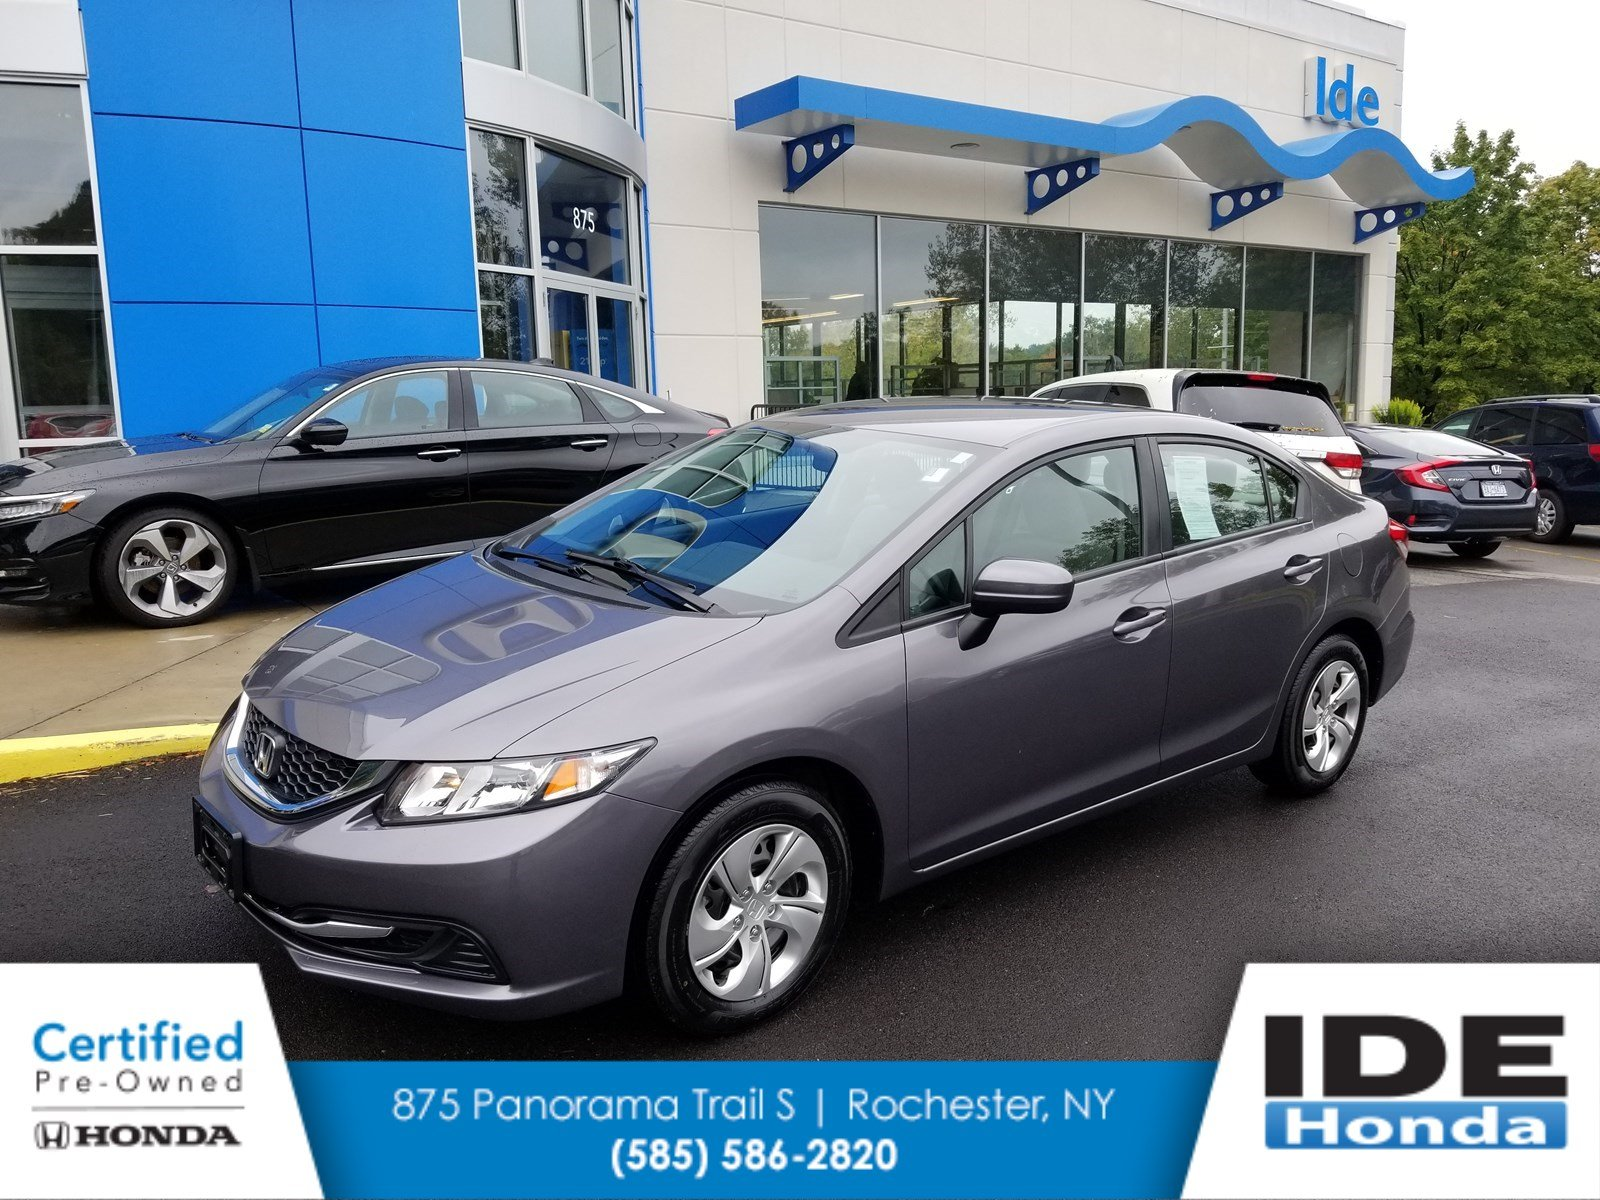 Exceptional Certified Pre Owned 2015 Honda Civic Sedan LX